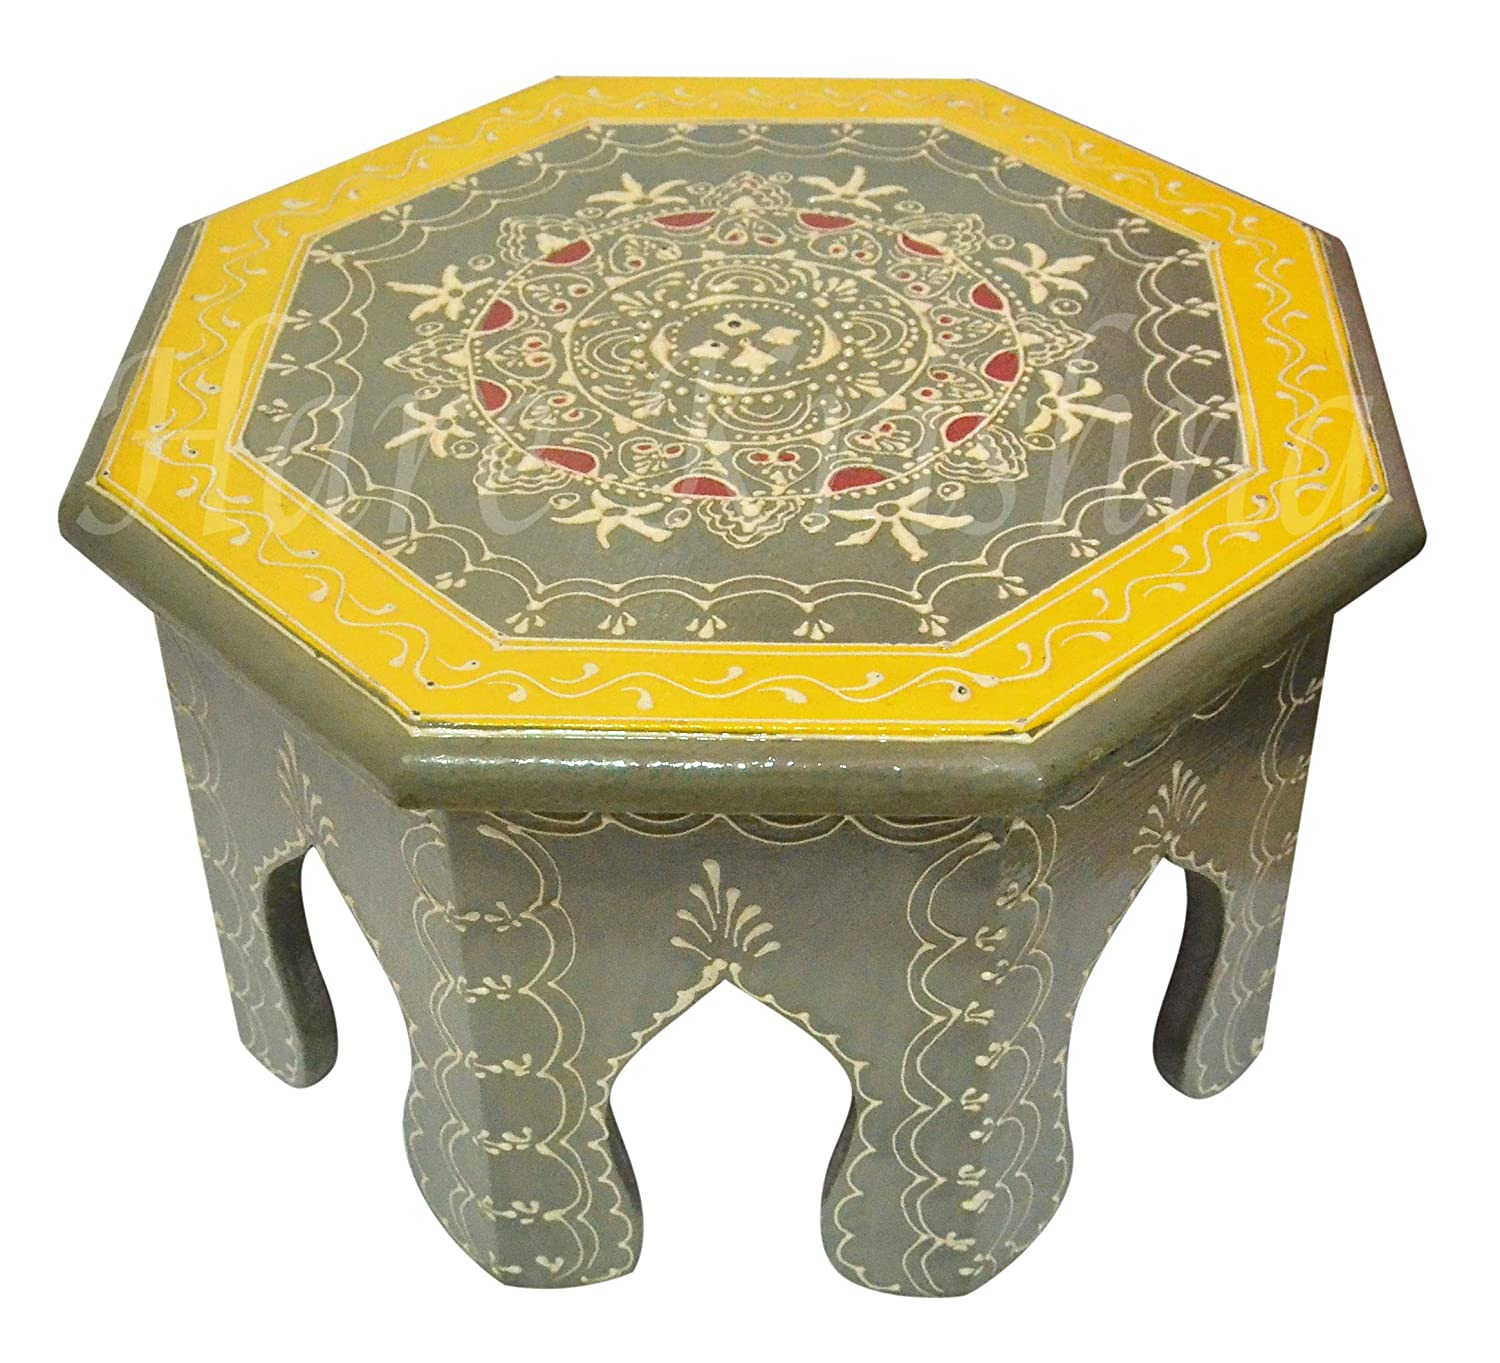 Amazon com indian round hand painted furniture pooja chowki gifts bajot grey 10 x 10 x 6 inches kitchen dining